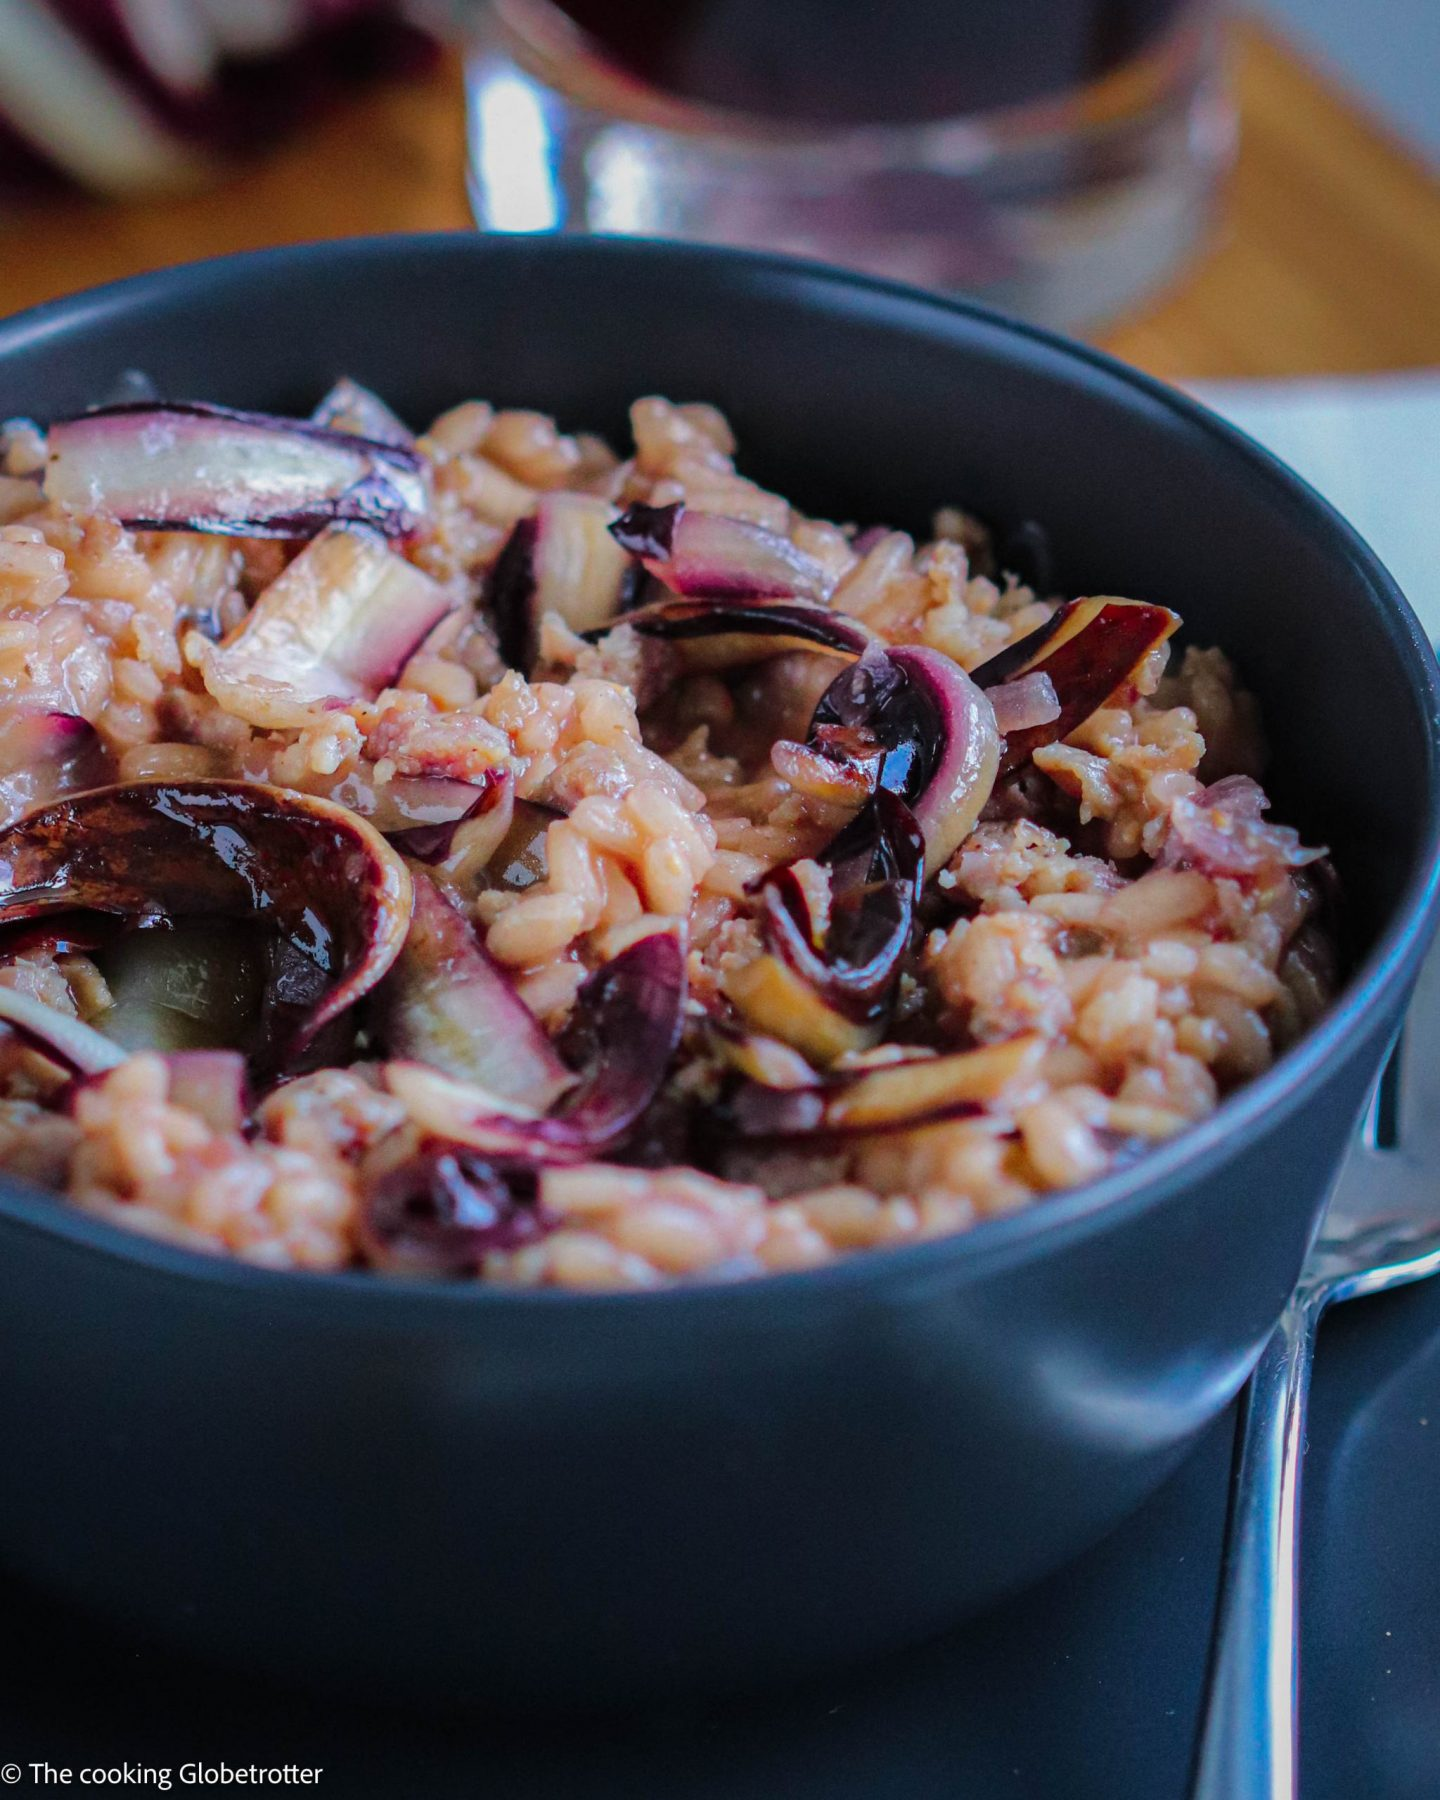 cooked one pot risotto italian Italy original recipe radicchio salad first course main dinner traditional scamorza cheese salsiccia italian sausage seasonal blogger food